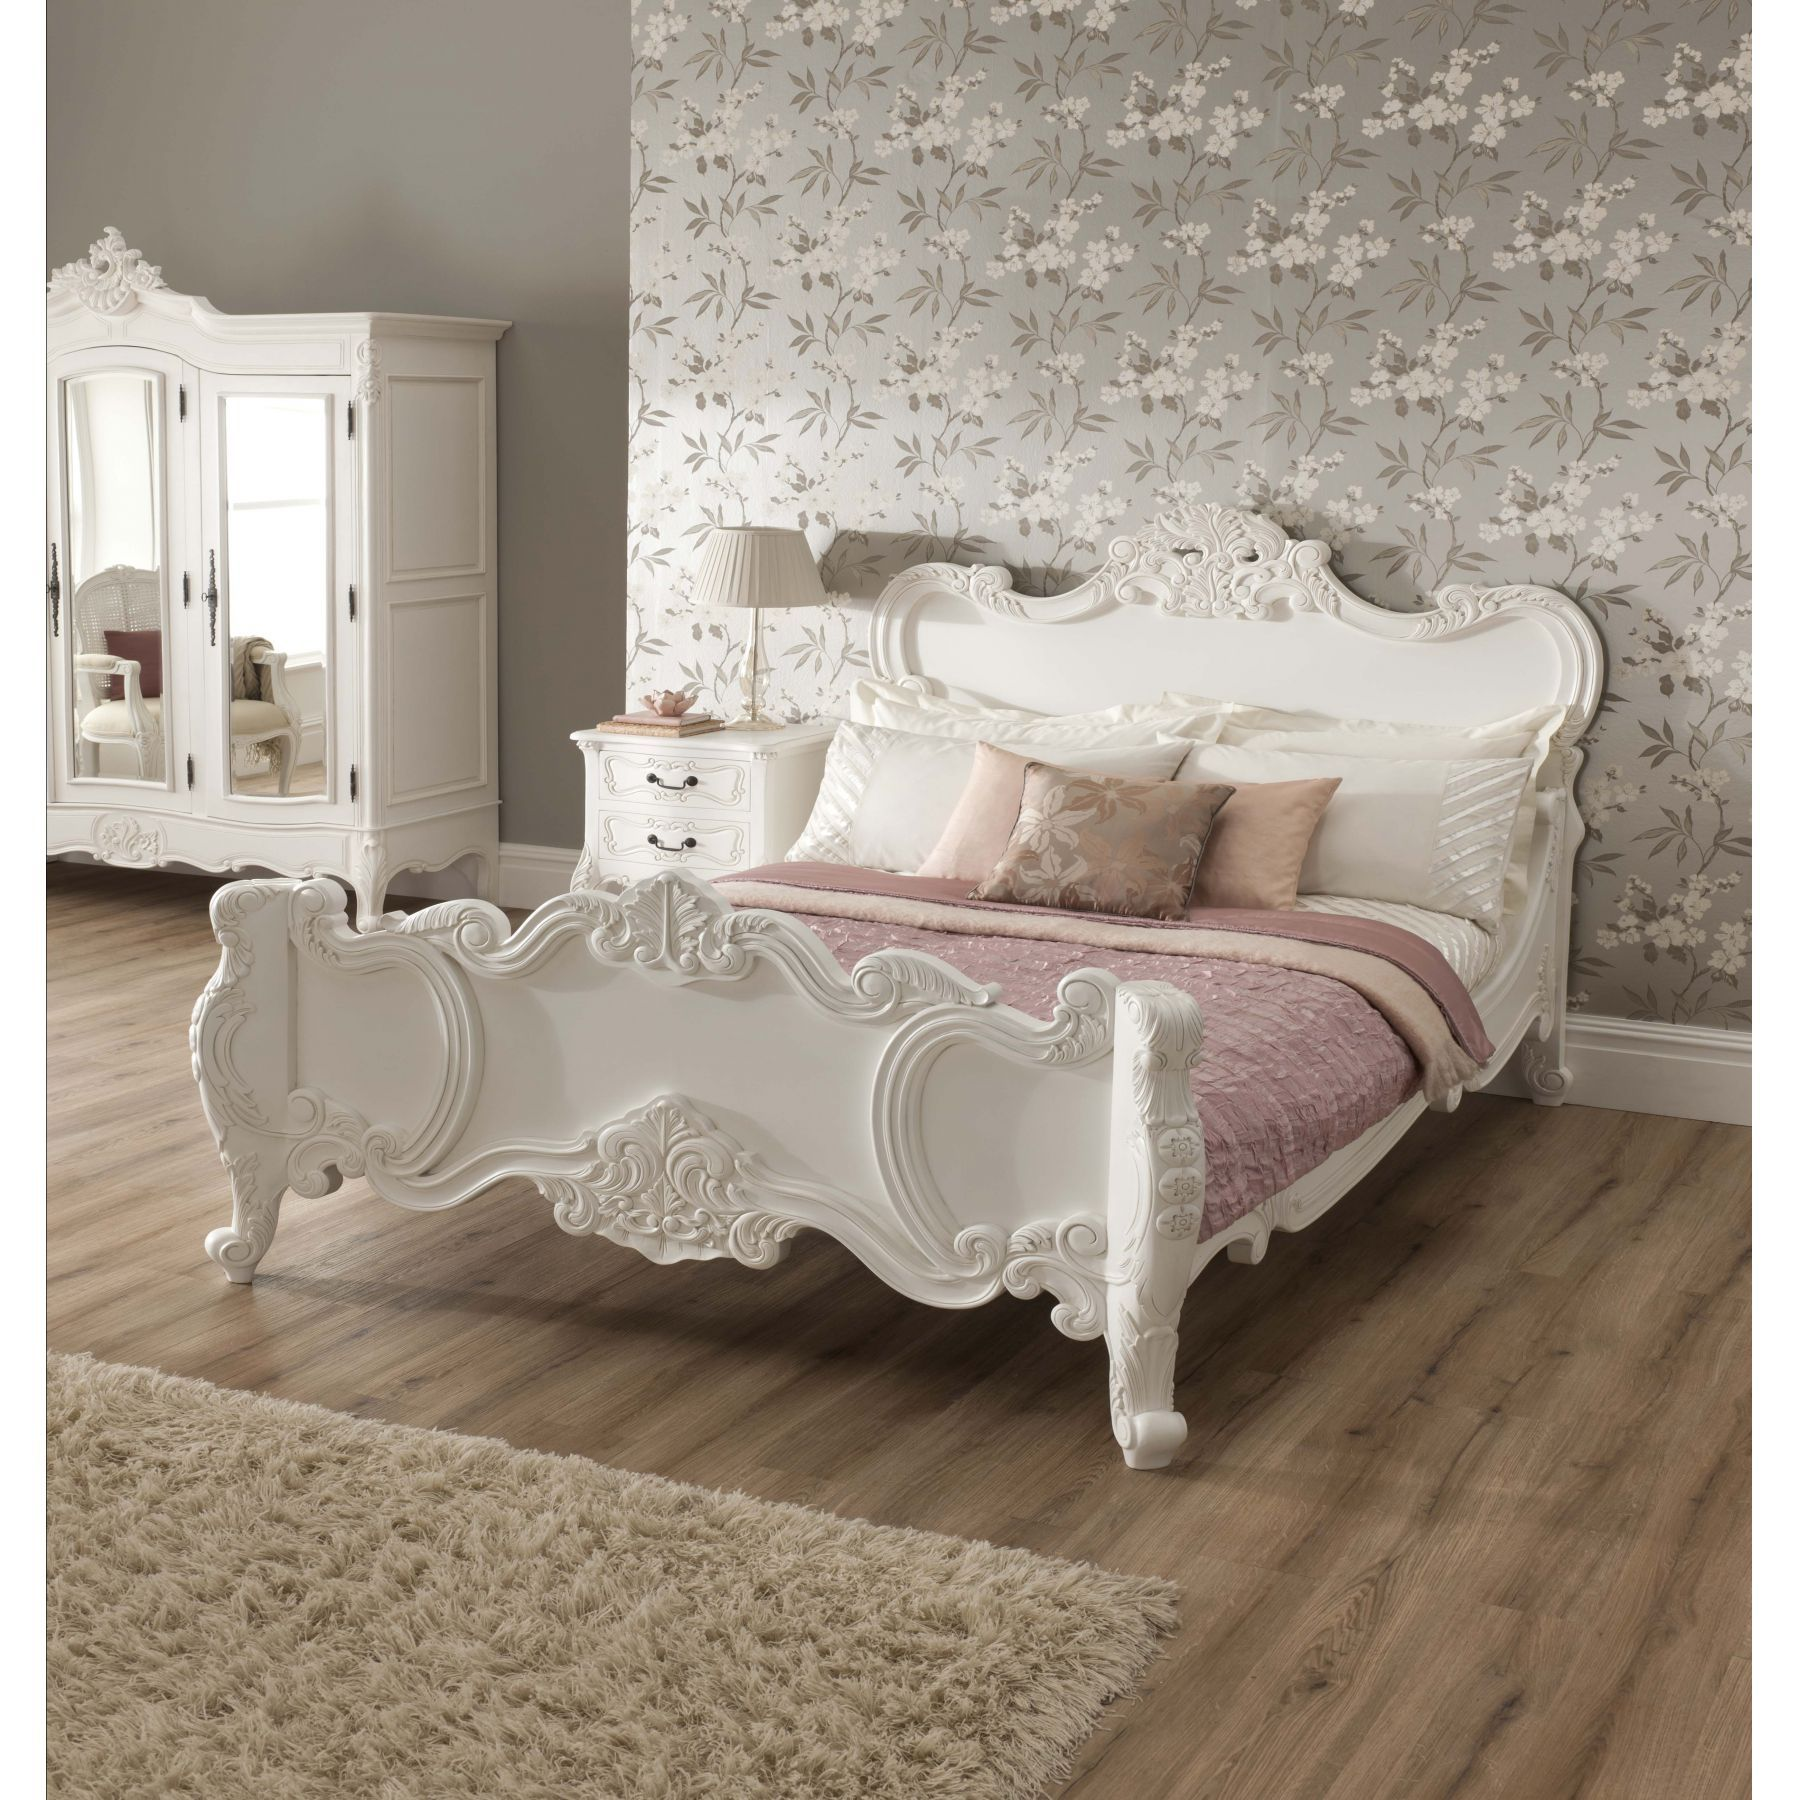 shabby chic sofa bed uk ashley crestwood walnut reviews attic bedroom ideas for the house